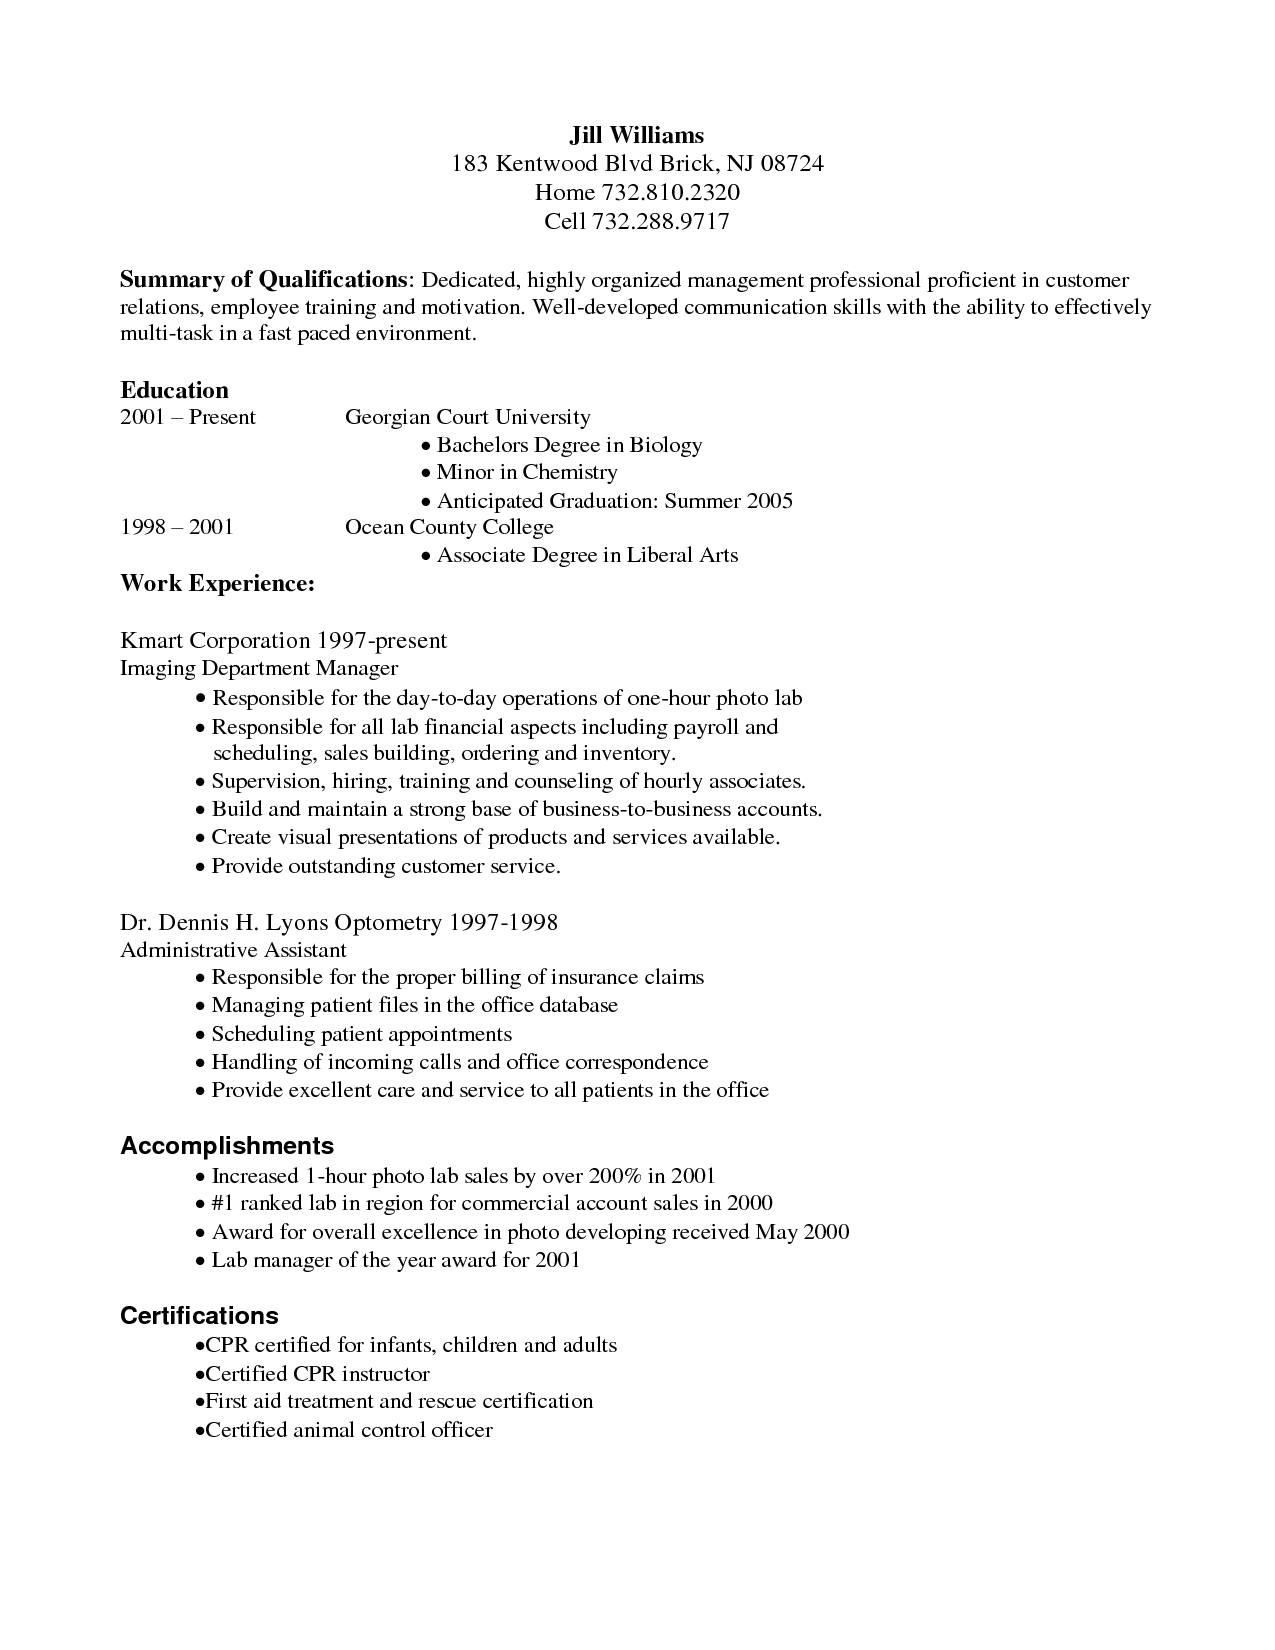 Rn Case Manager Resume Resume Examples  Impart Flawless Dental Assistant Resume Templates  Efficient Treatments Qualifications More Than Eught Years